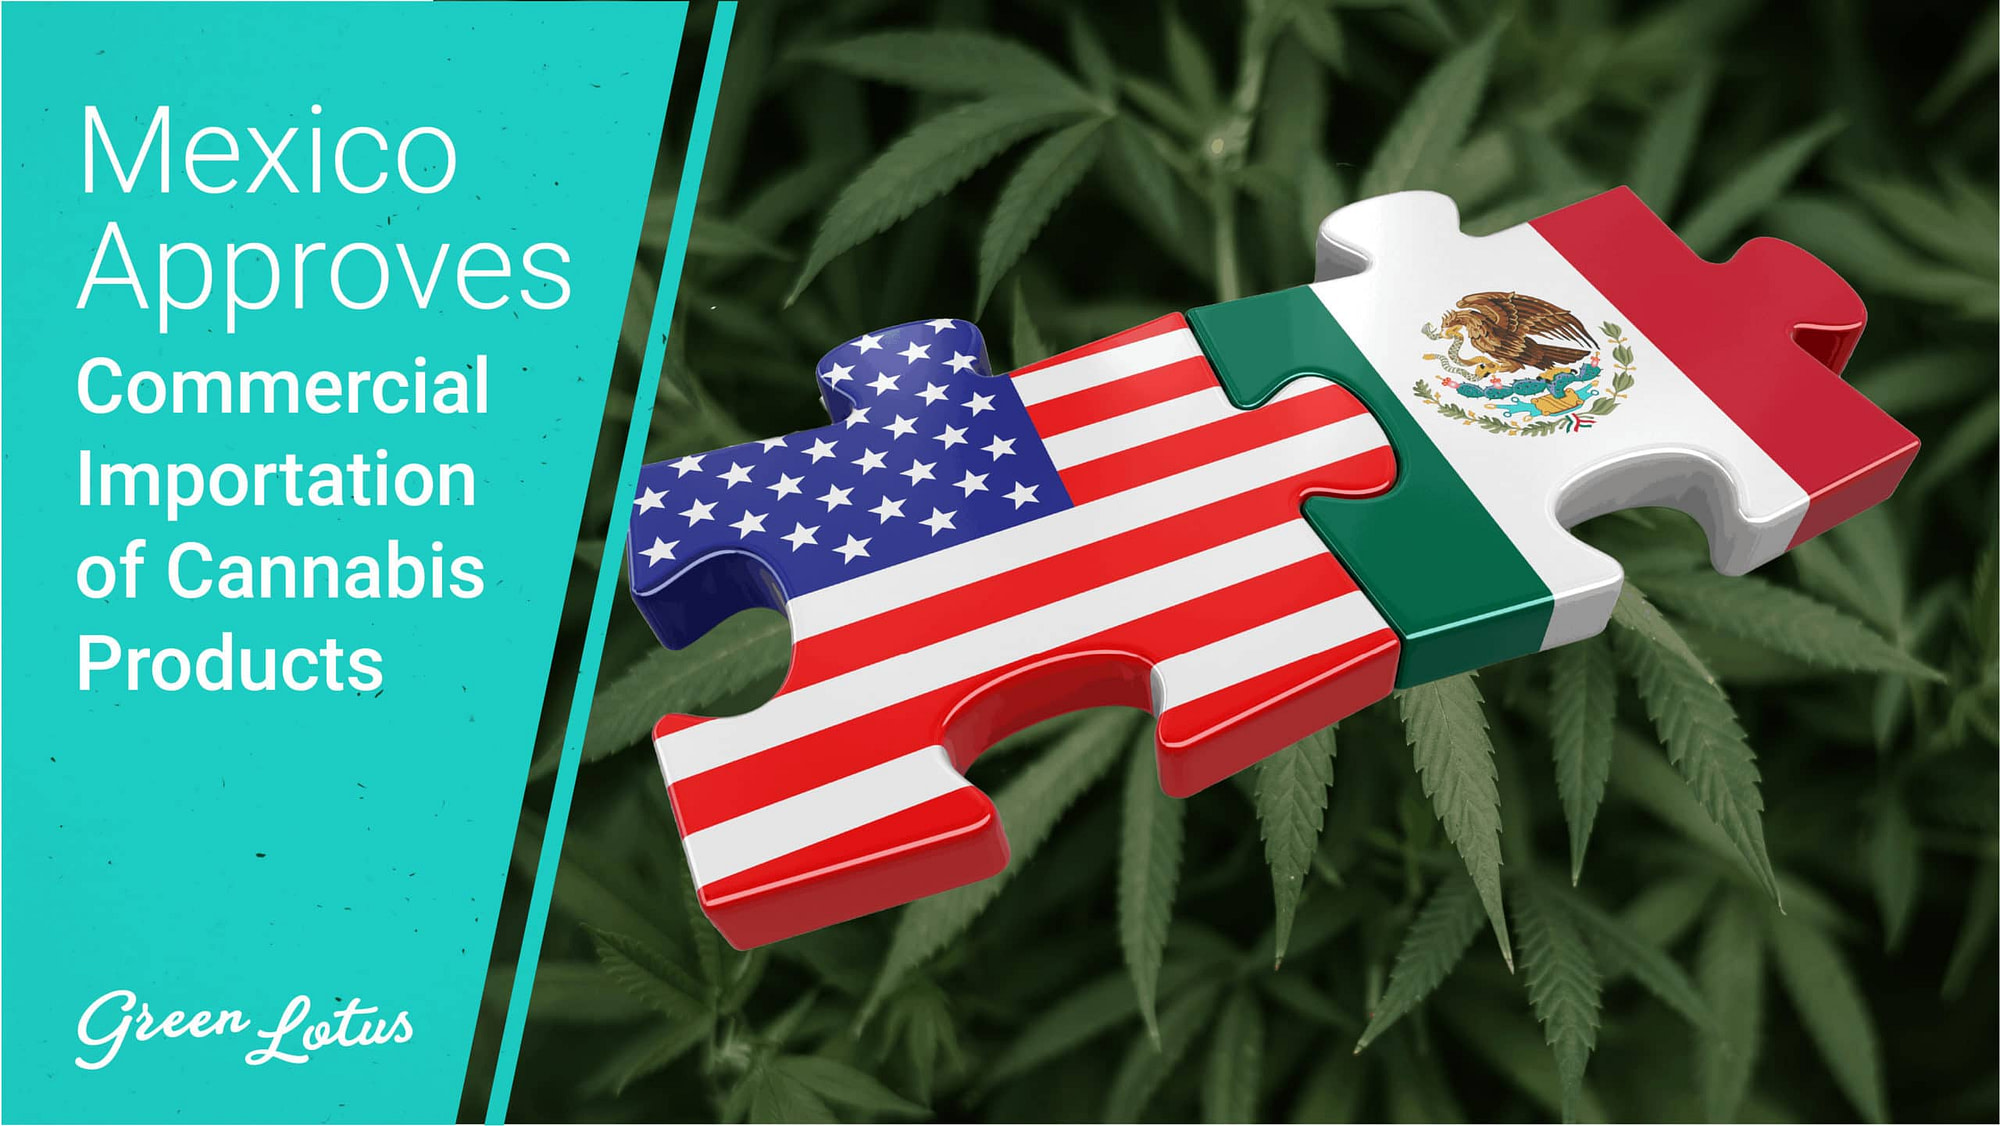 Mexico Approves the Commercial Importation of Cannabis Products